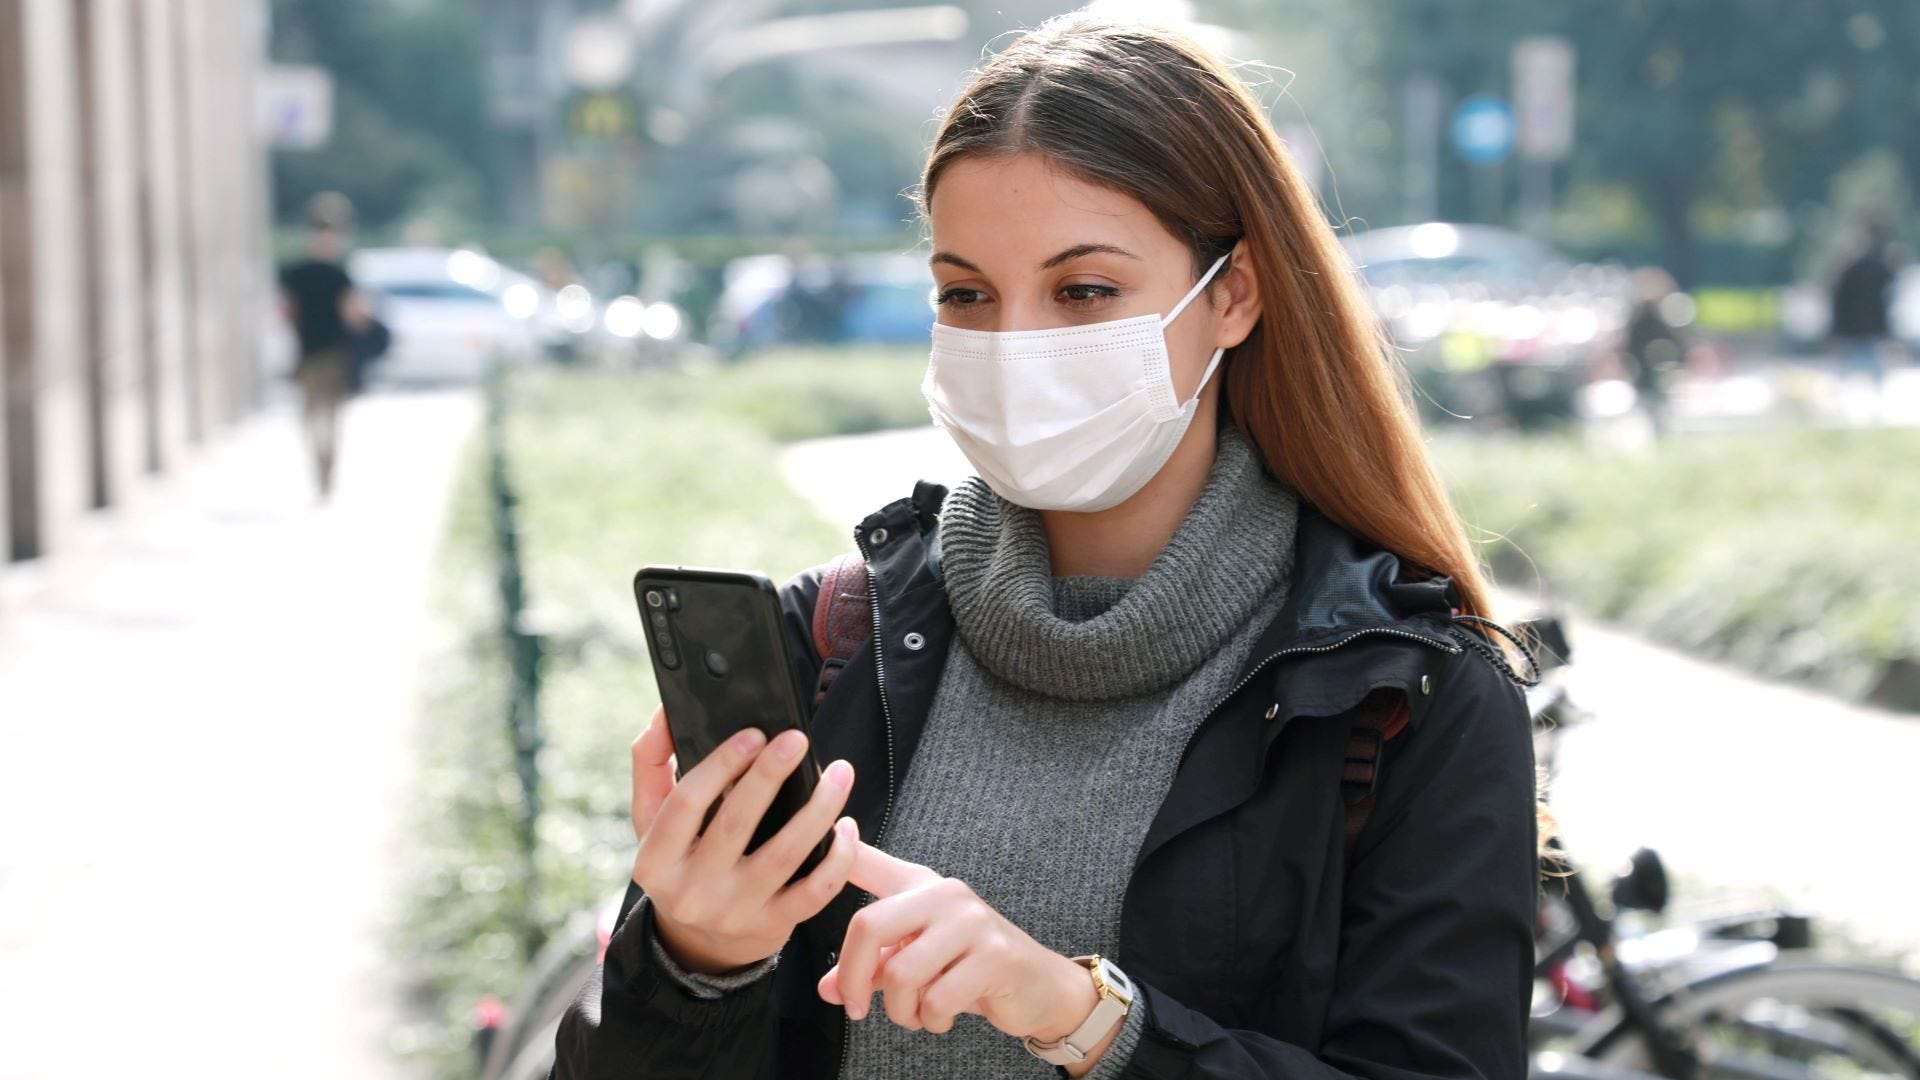 A young woman wearing a face mask on a college campus and looking at a map app on her phone.